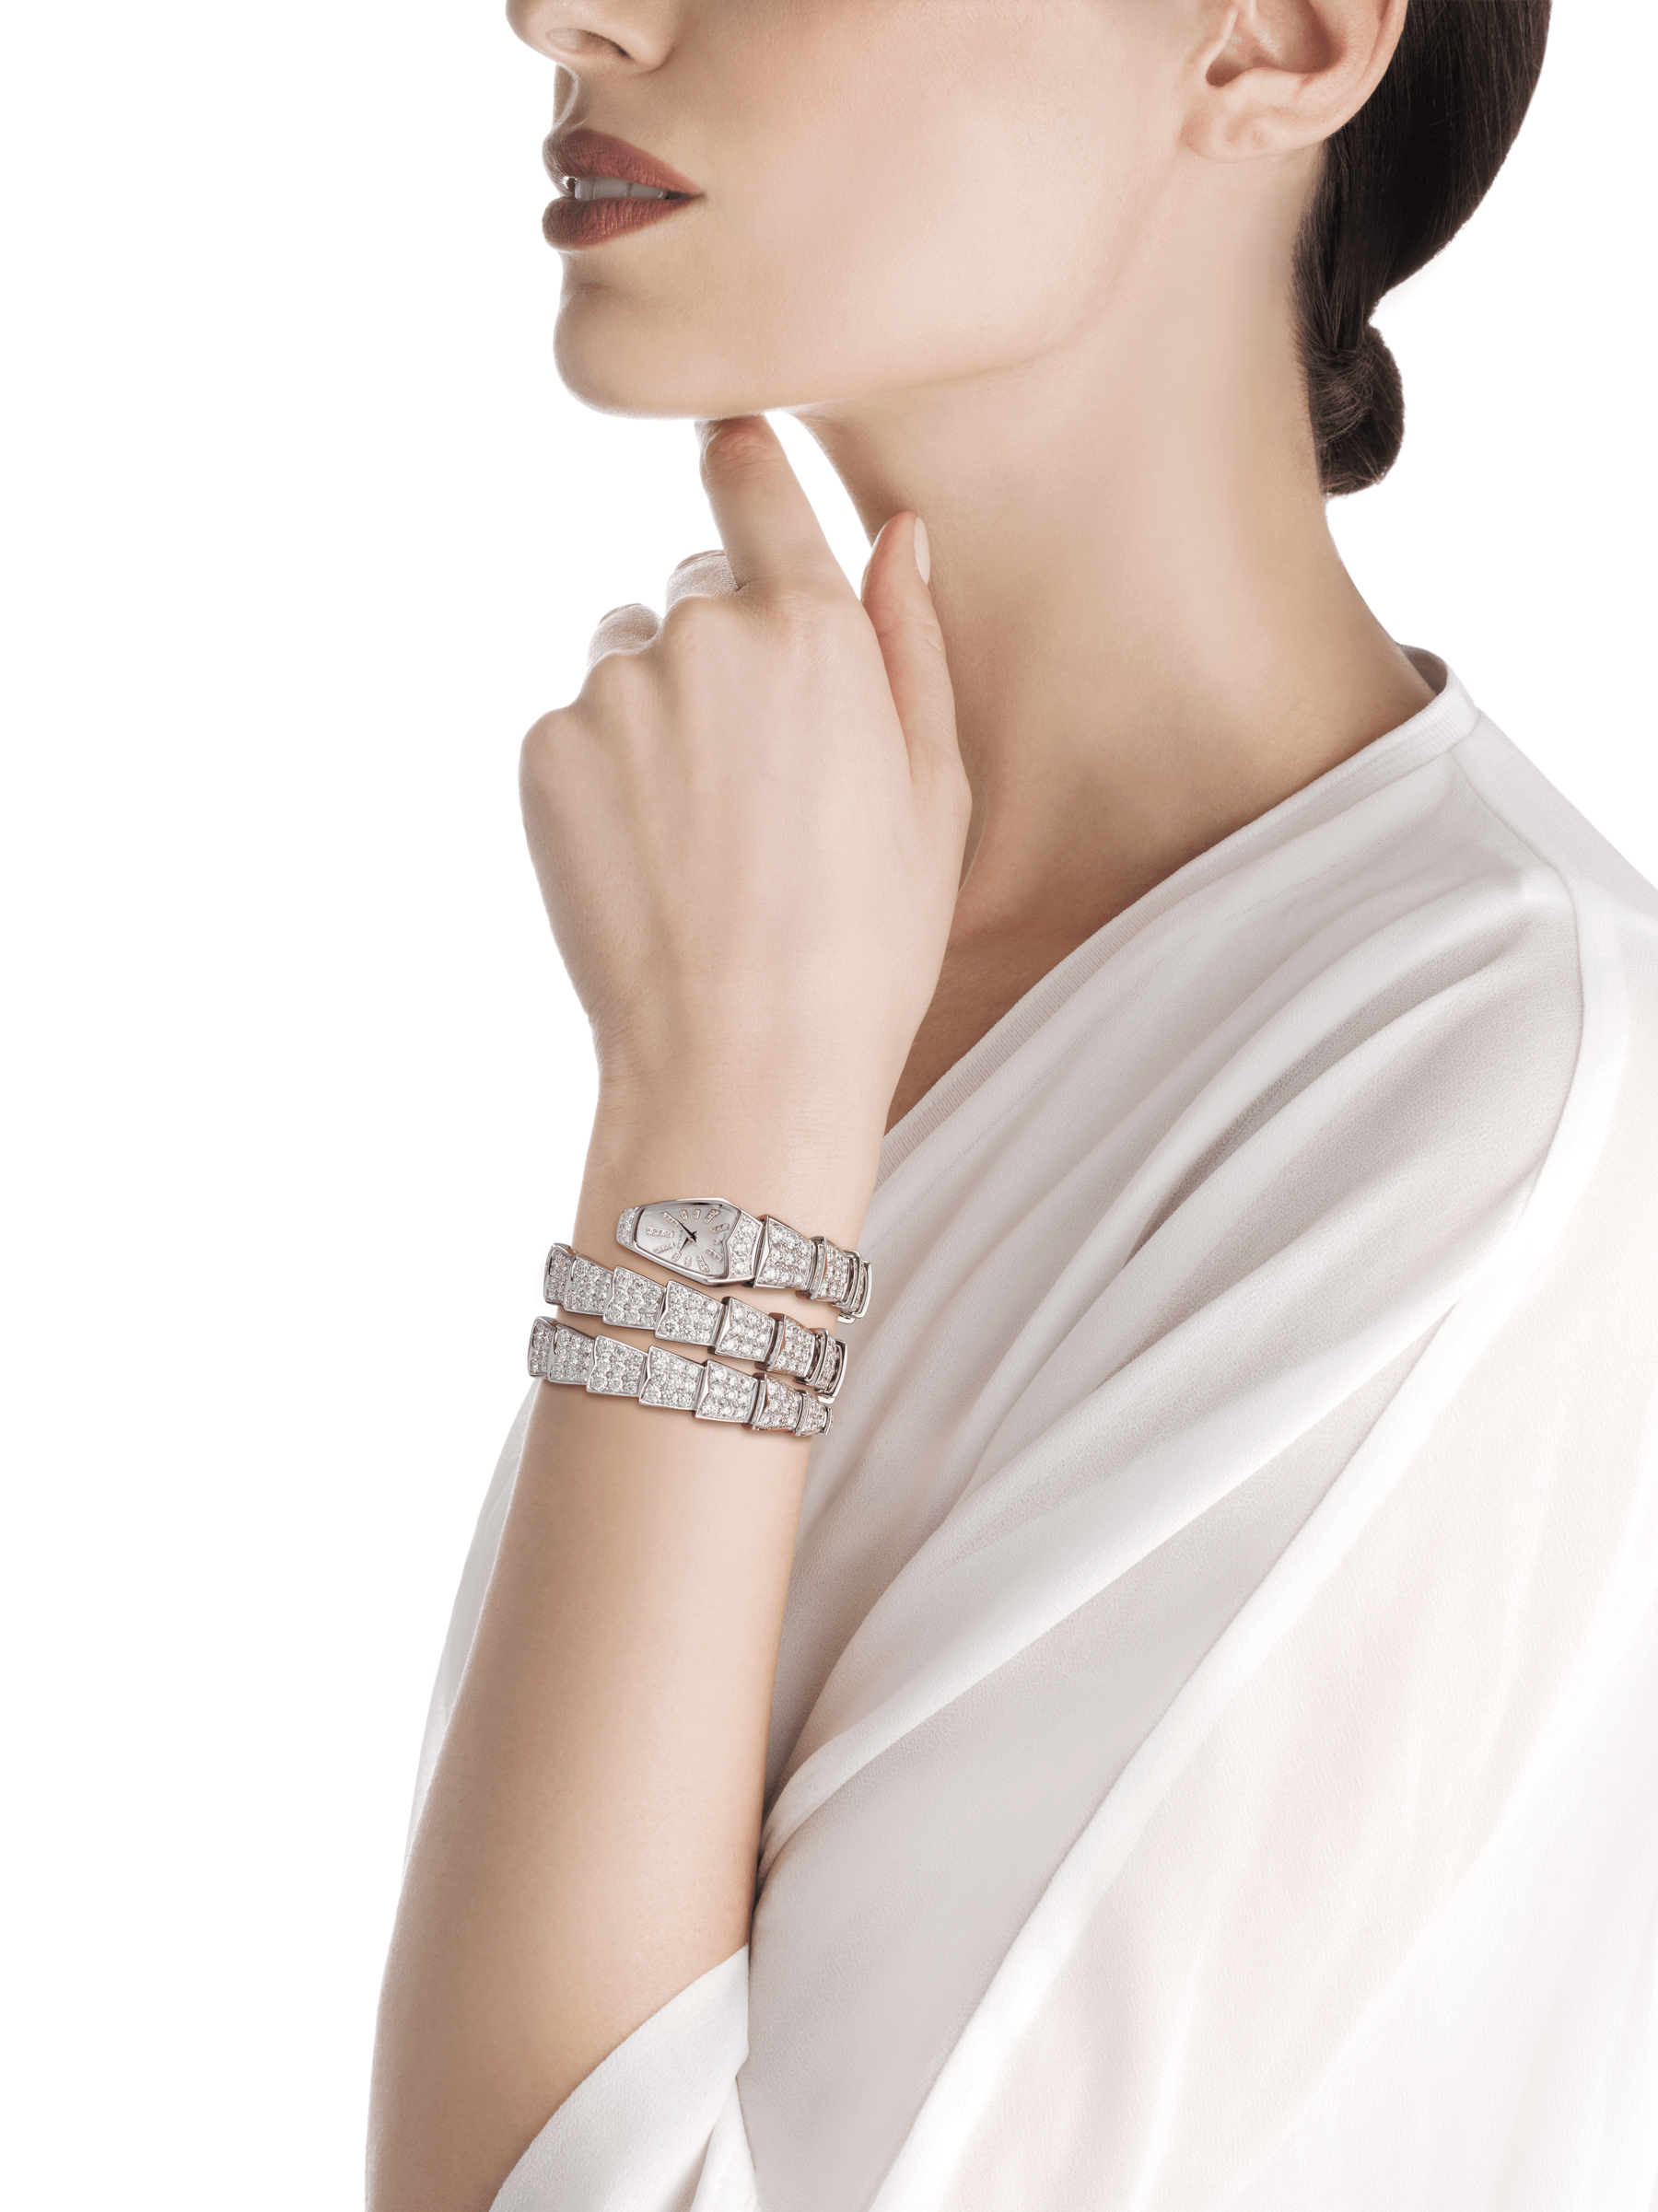 Serpenti Jewellery Watch in 18 kt white gold case and double spiral bracelet, both set with brilliant cut diamonds, white mother-of-pearl dial and diamond indexes. 101786 image 3